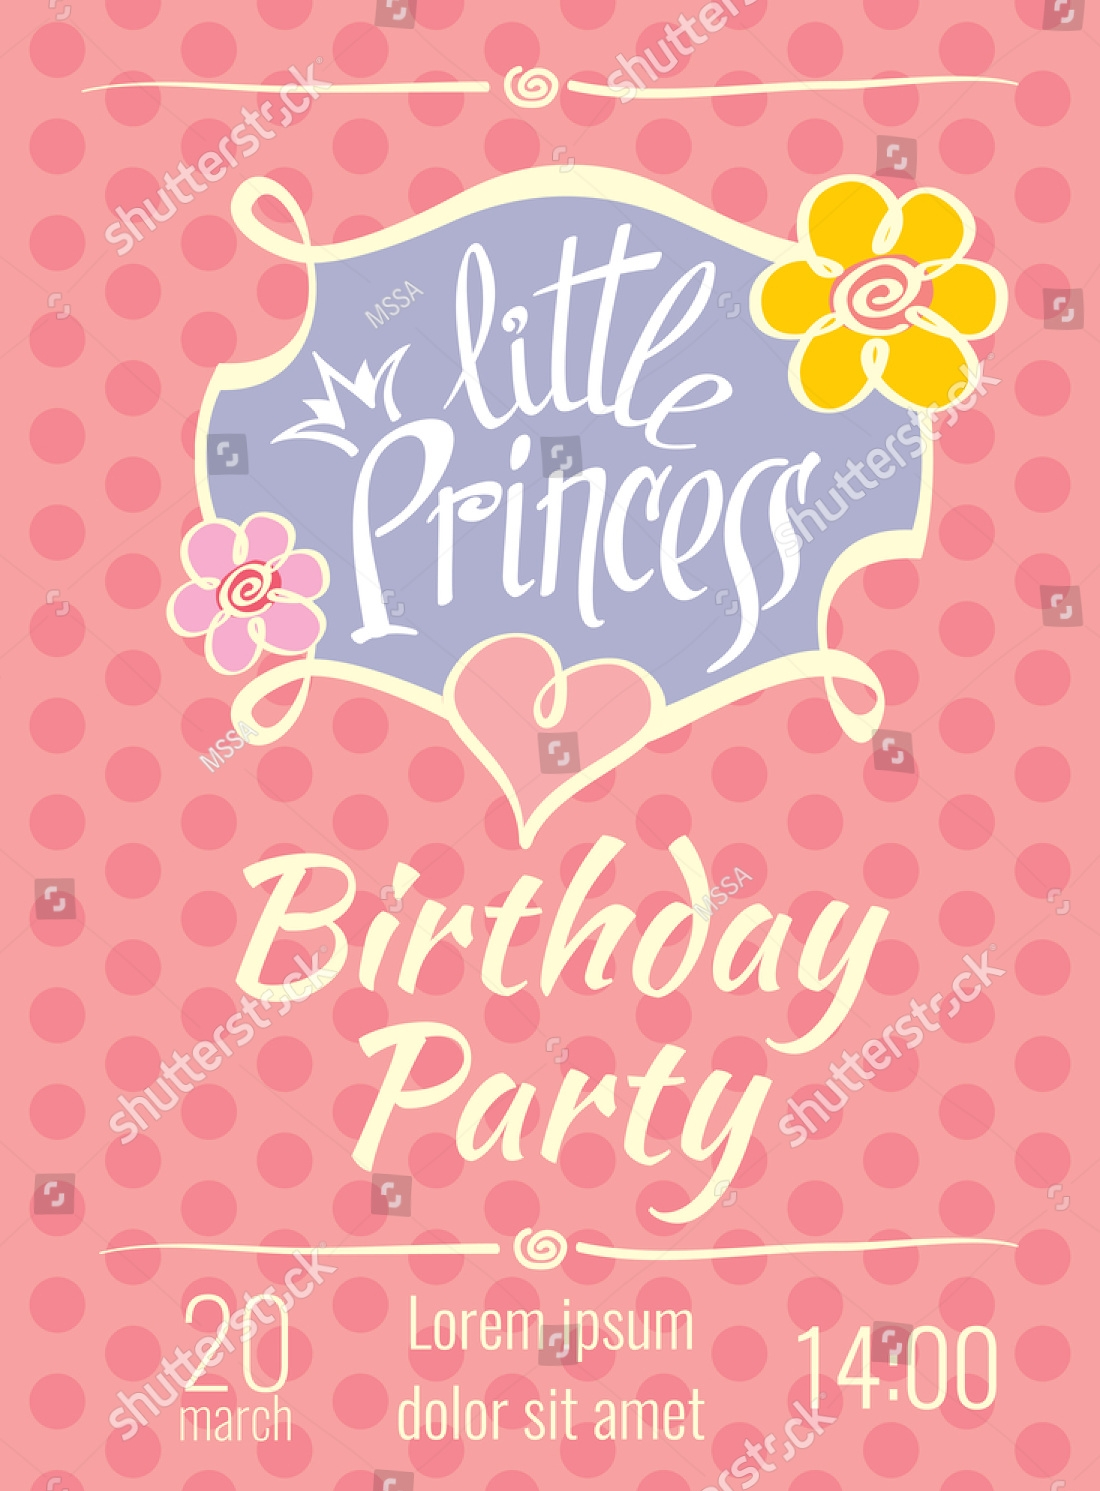 stylish little princes party invitation